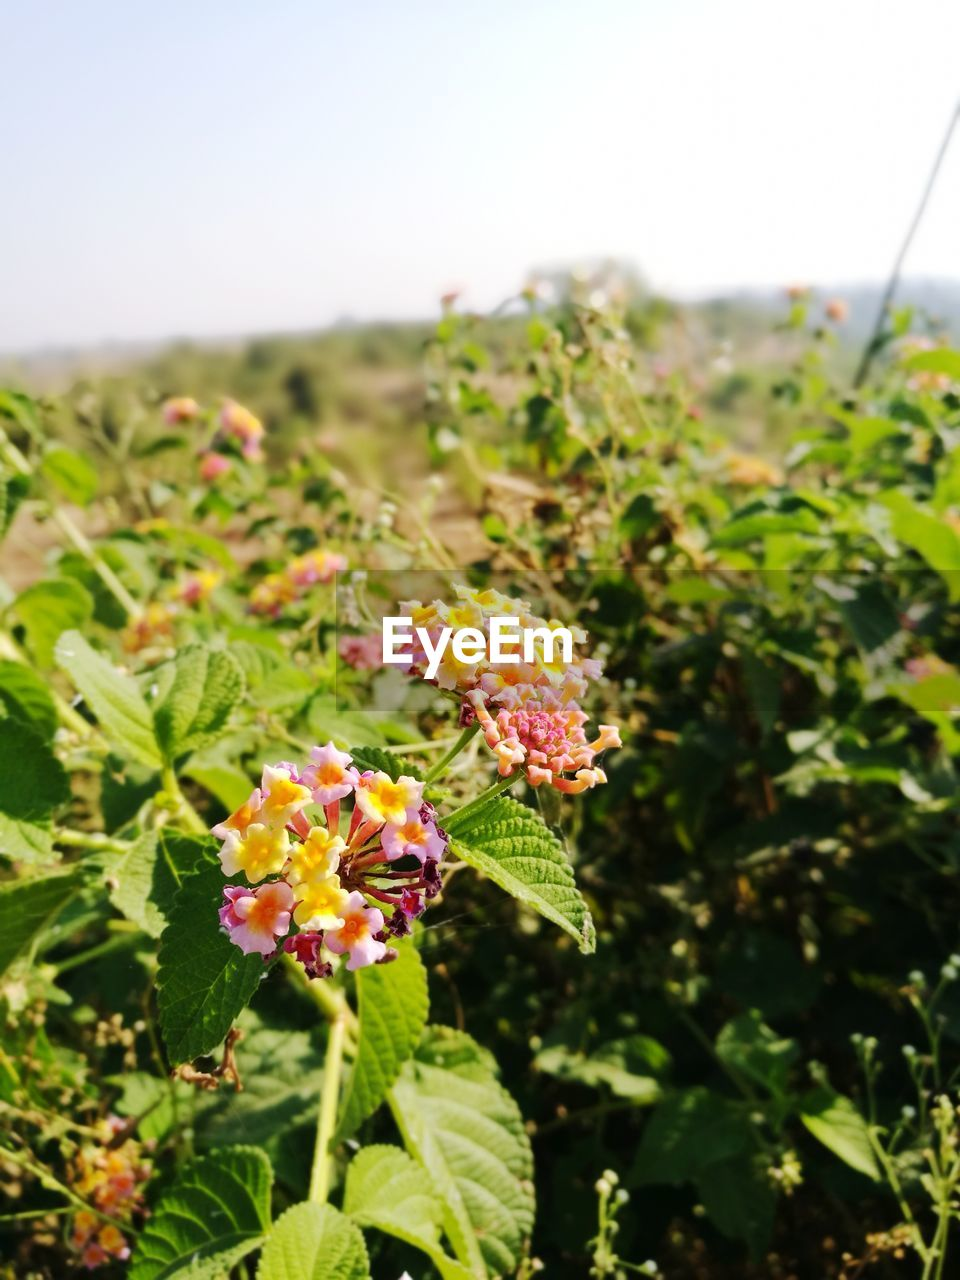 flower, beauty in nature, nature, growth, plant, freshness, fragility, green color, focus on foreground, day, no people, outdoors, petal, flower head, close-up, blooming, lantana camara